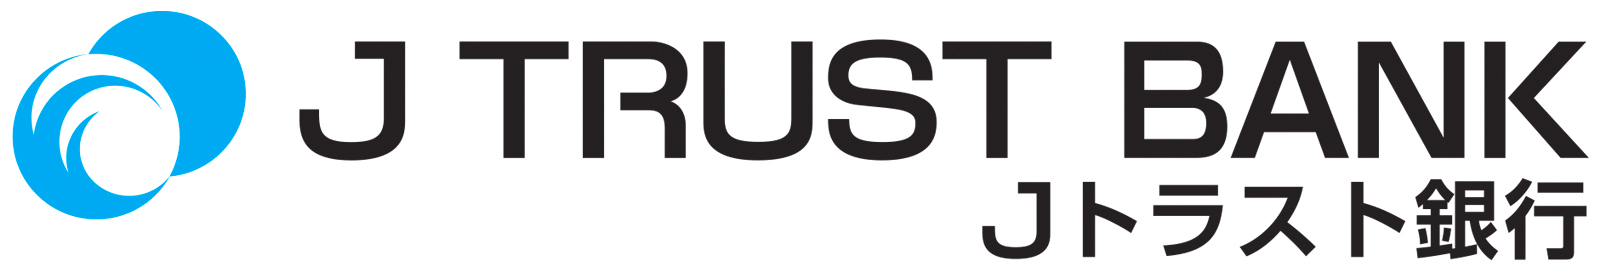 all trust bank Hometrust bank is a community-focused financial institution committed to providing value added relationship banking through talented, service-focused people.